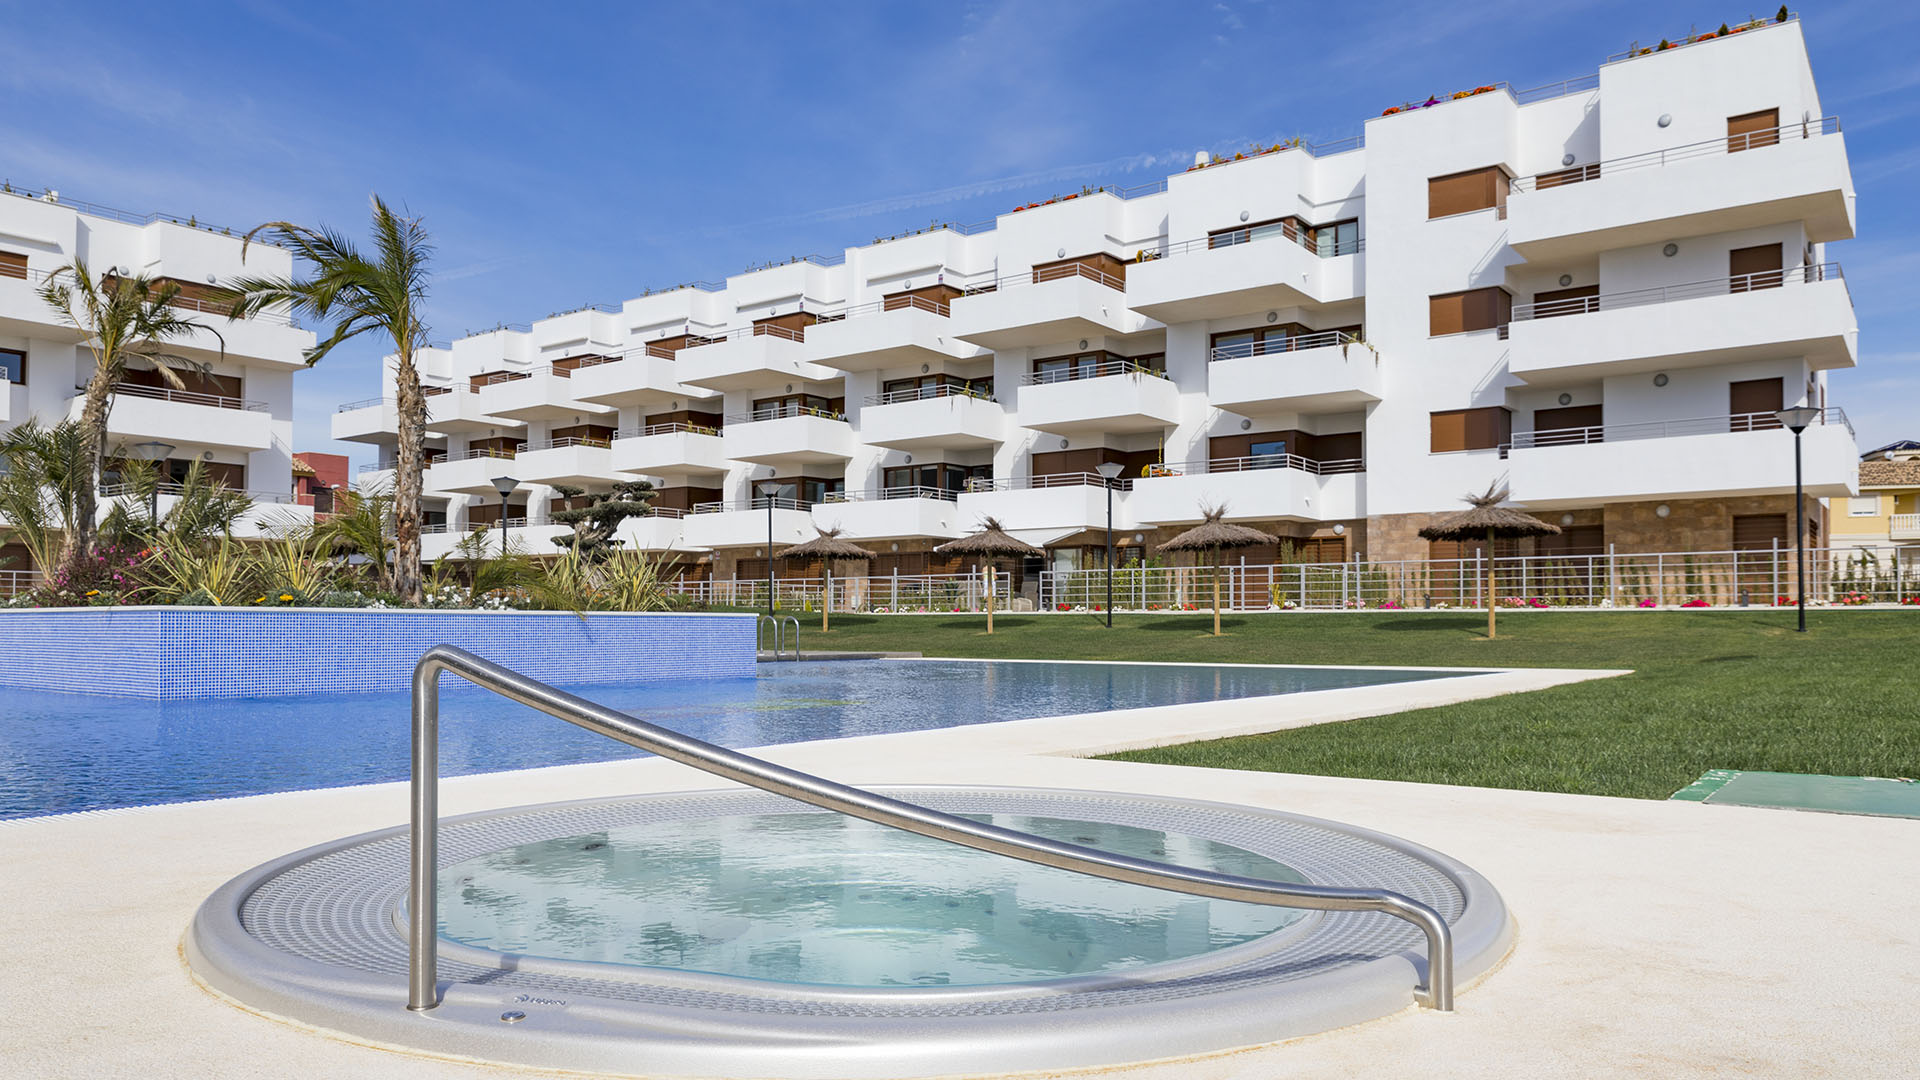 Holidays in torrevieja orihuela costa for Costa sol almeria